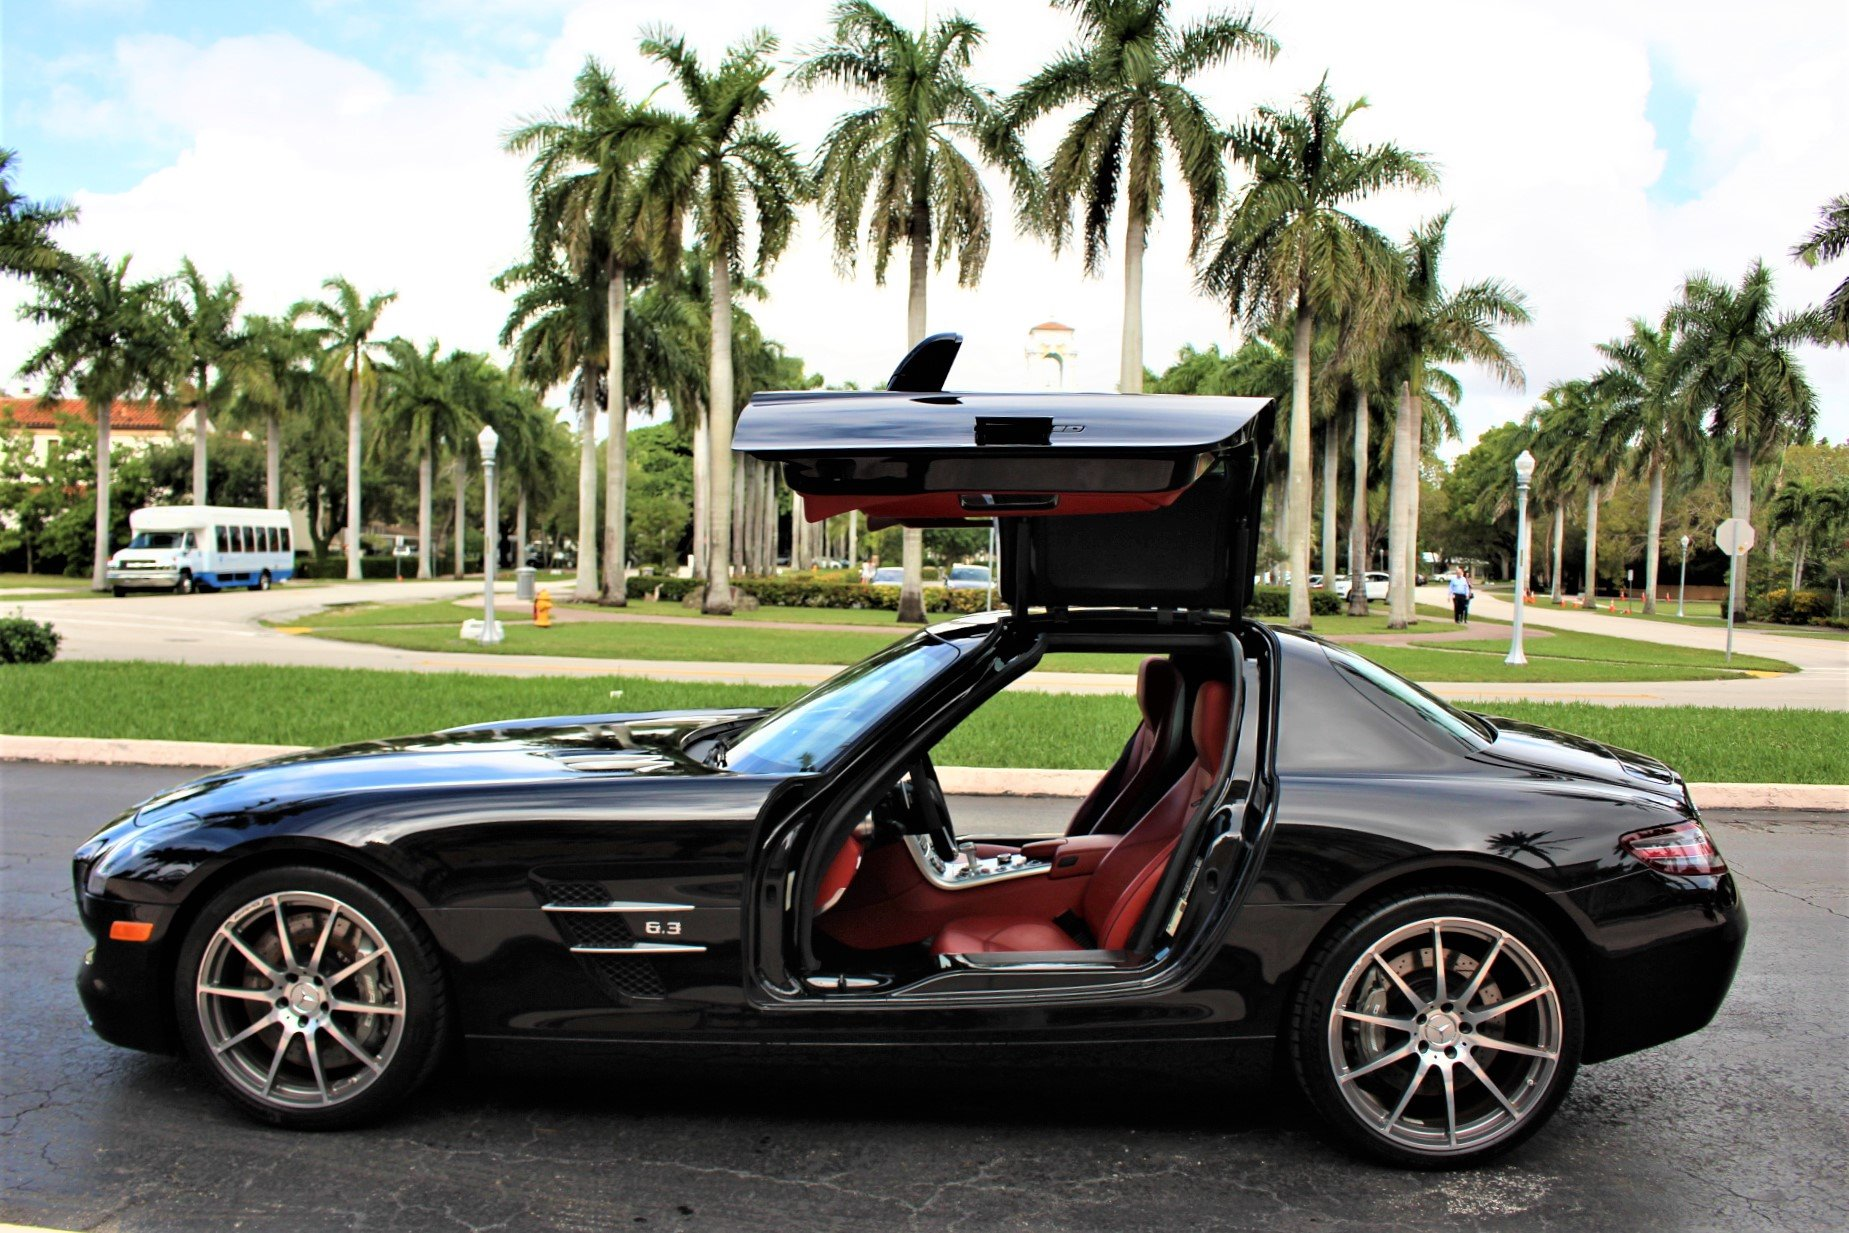 Used 2011 Mercedes-Benz SLS AMG for sale $144,850 at The Gables Sports Cars in Miami FL 33146 2